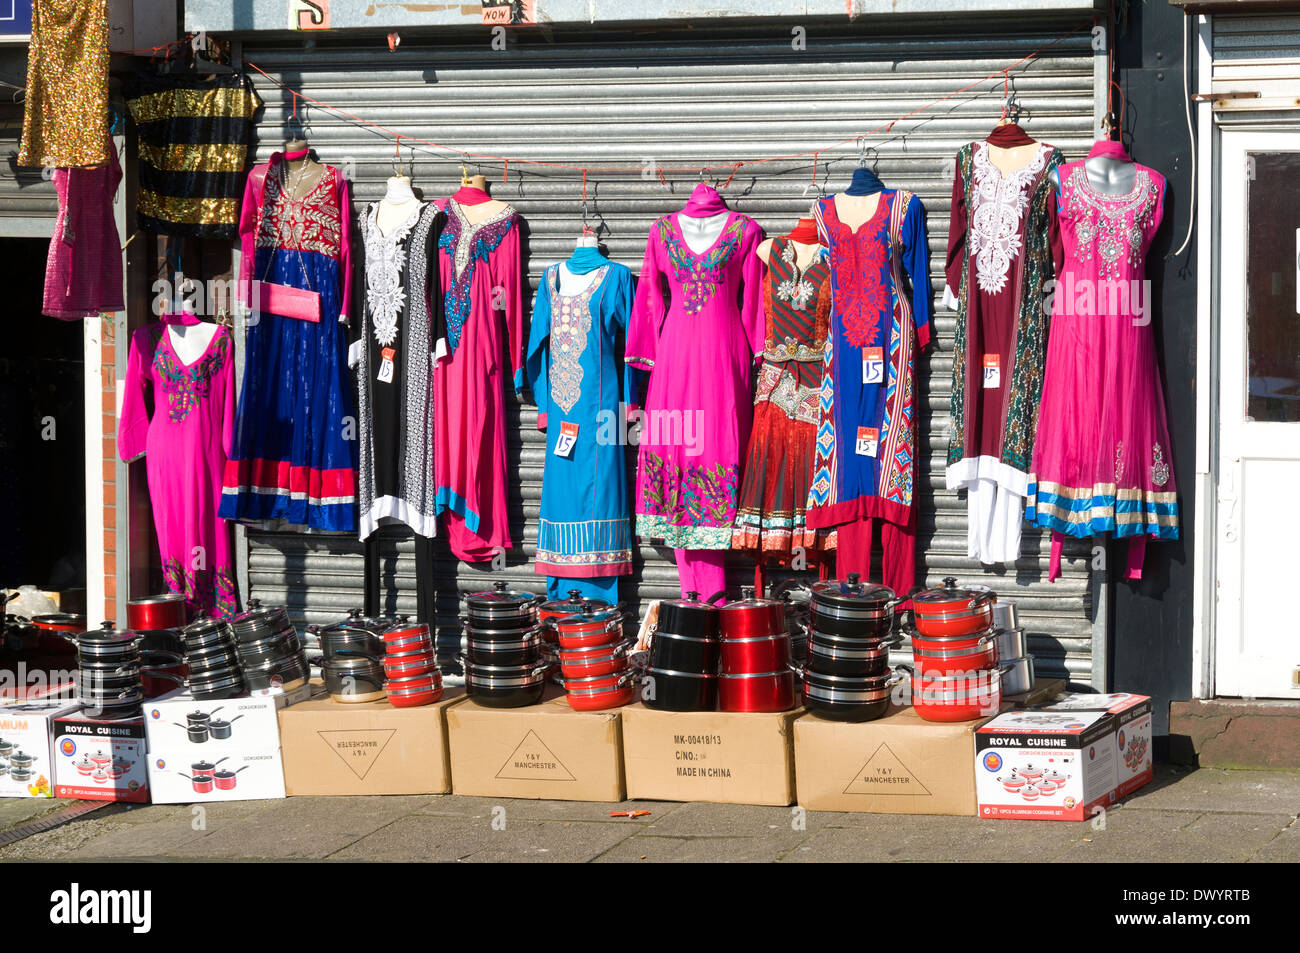 Brightly coloured dresses and cooking pans outside an Asian shop, Oldham, Greater Manchester, England, UK - Stock Image